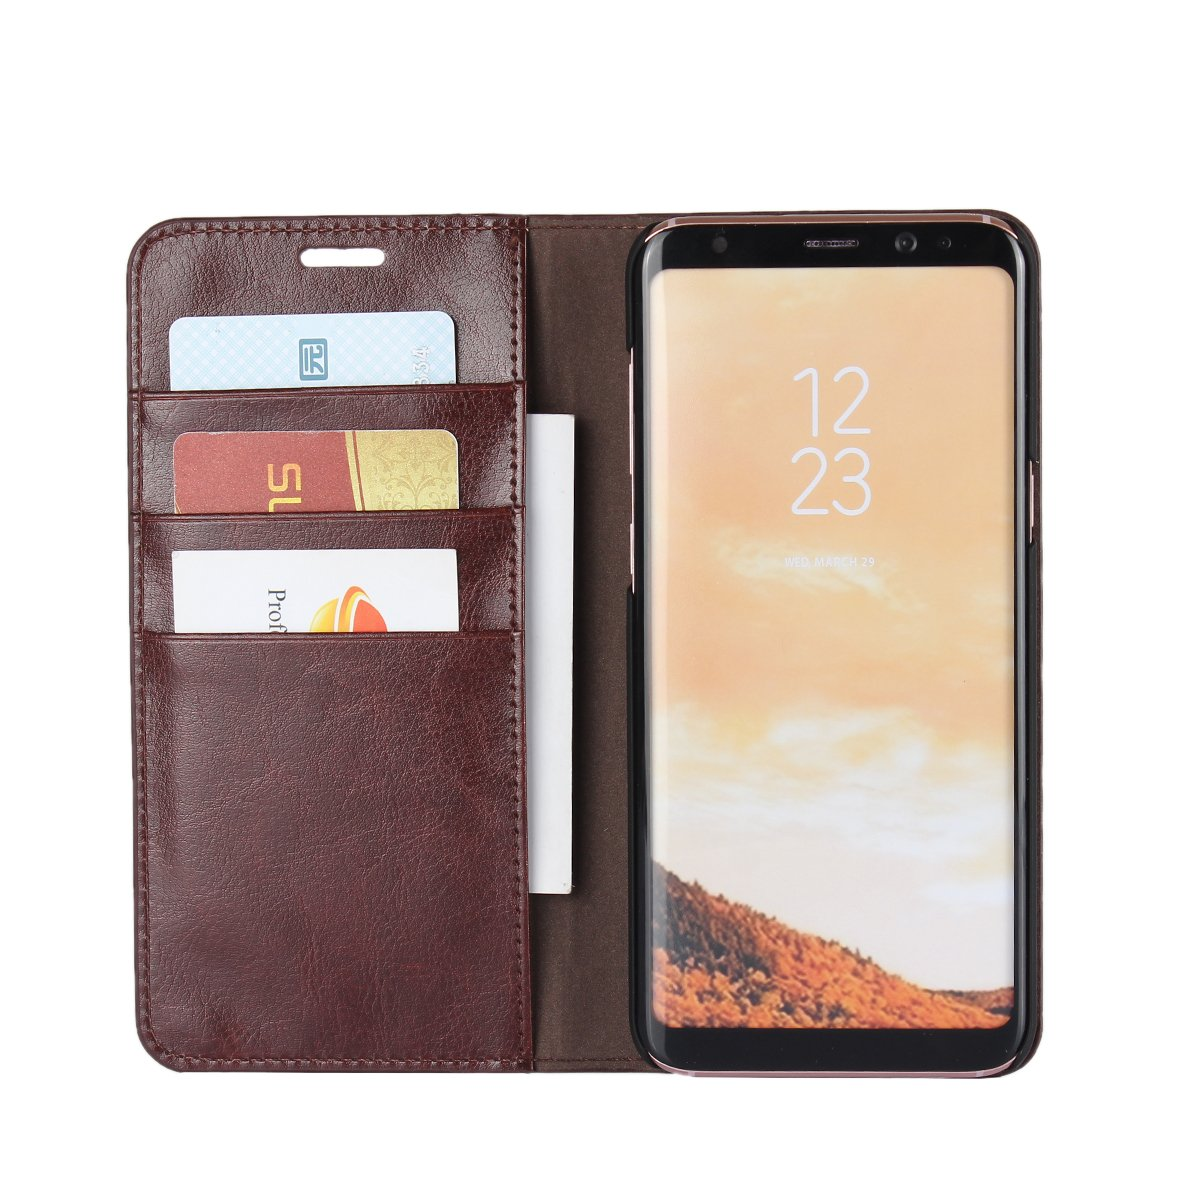 Dark Brown Samsung Galaxy S8 Plus Case,iCoverCase Genuine Leather Wallet Case Folio Book Design with Stand and Card Slots Flip Case Cover for Samsung Galaxy S8 Plus 6.2 inch Slim Fit